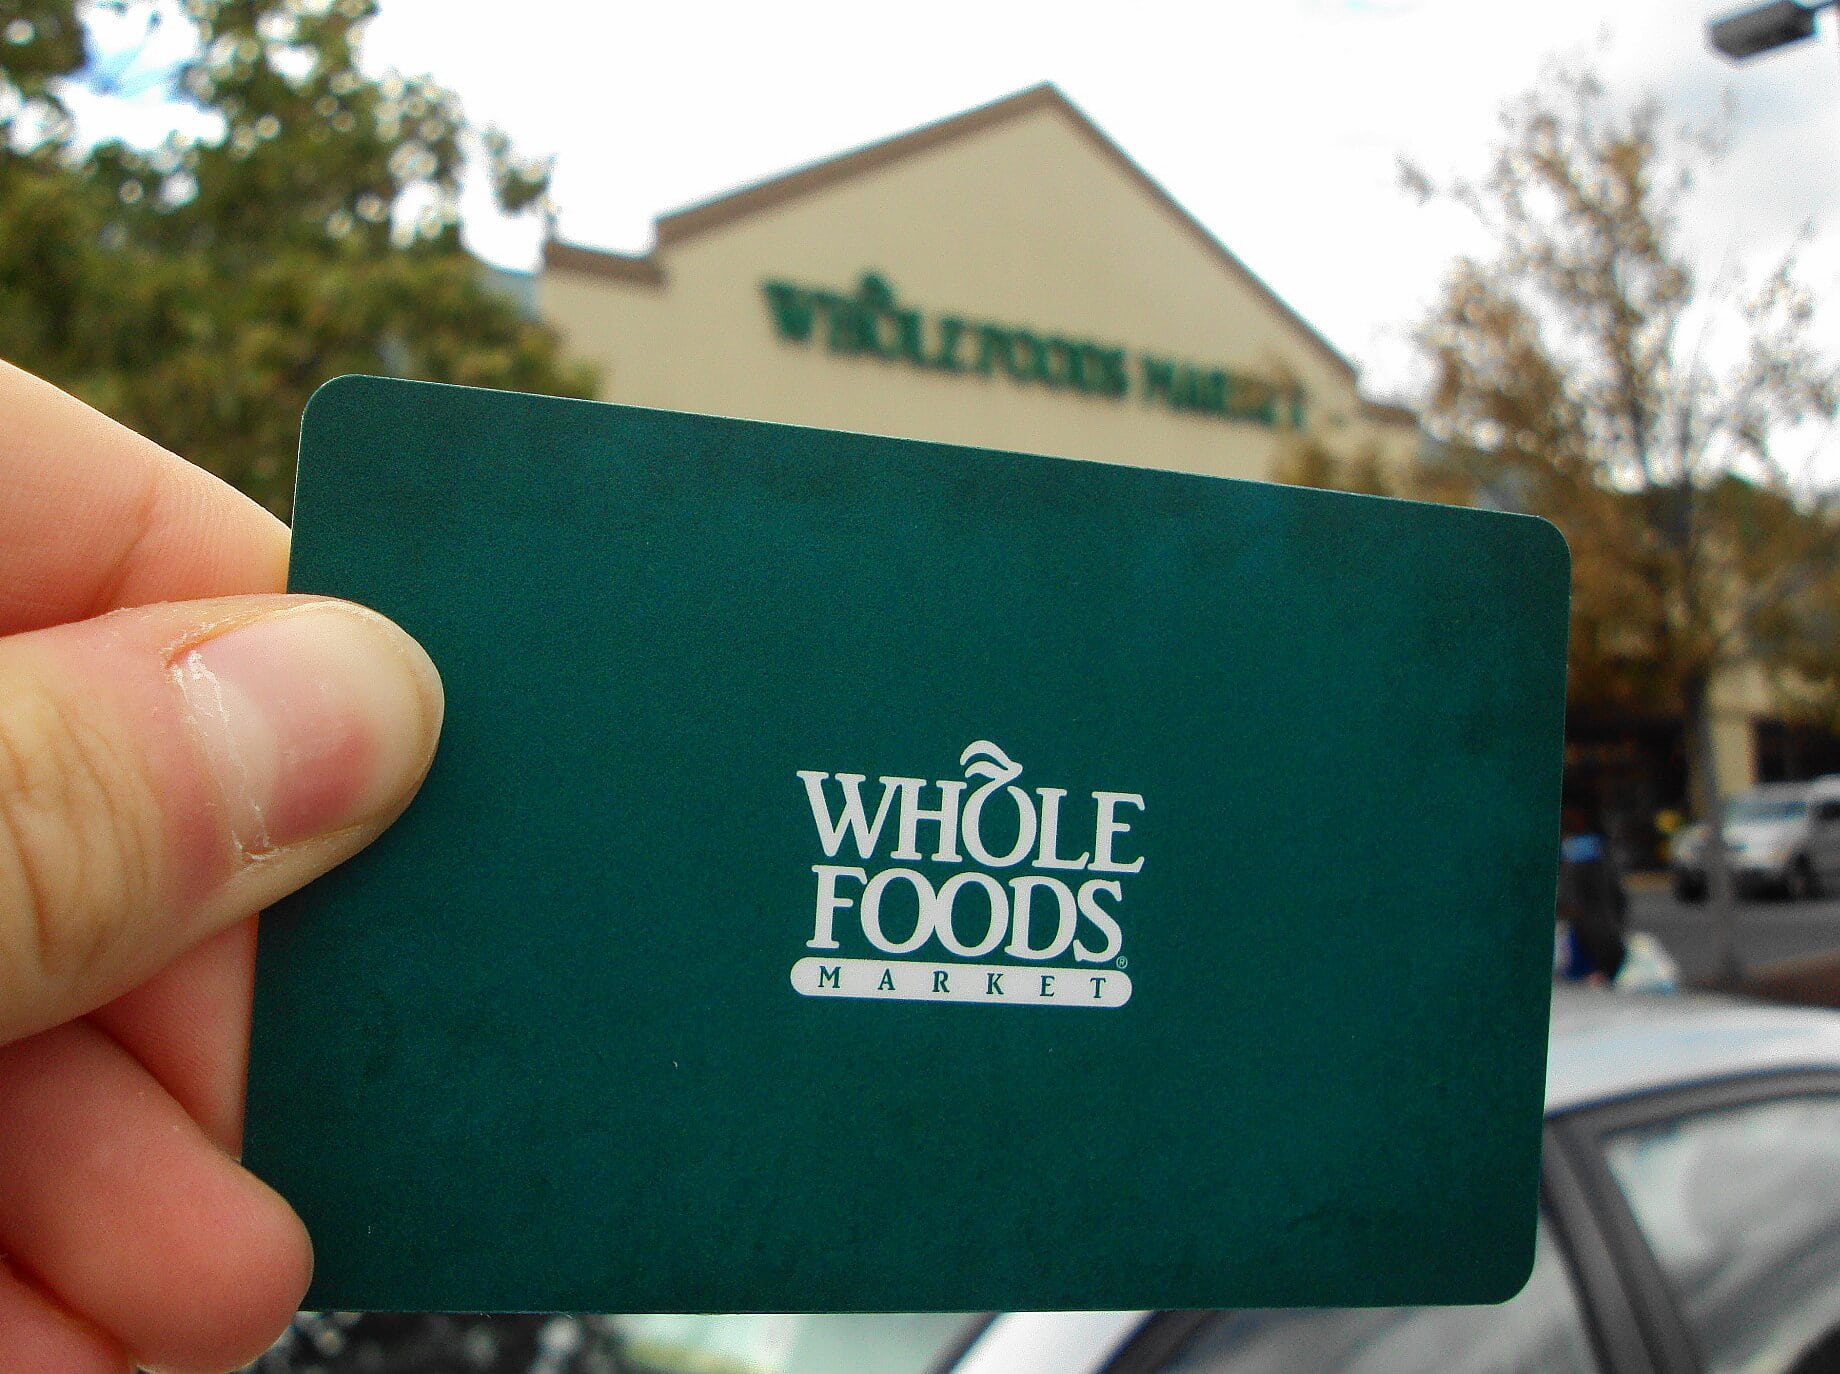 Get a free Whole Foods Market Gift Card worth $ Apply today to become a mystery shopper for your chance to shop at Whole Farms for free.